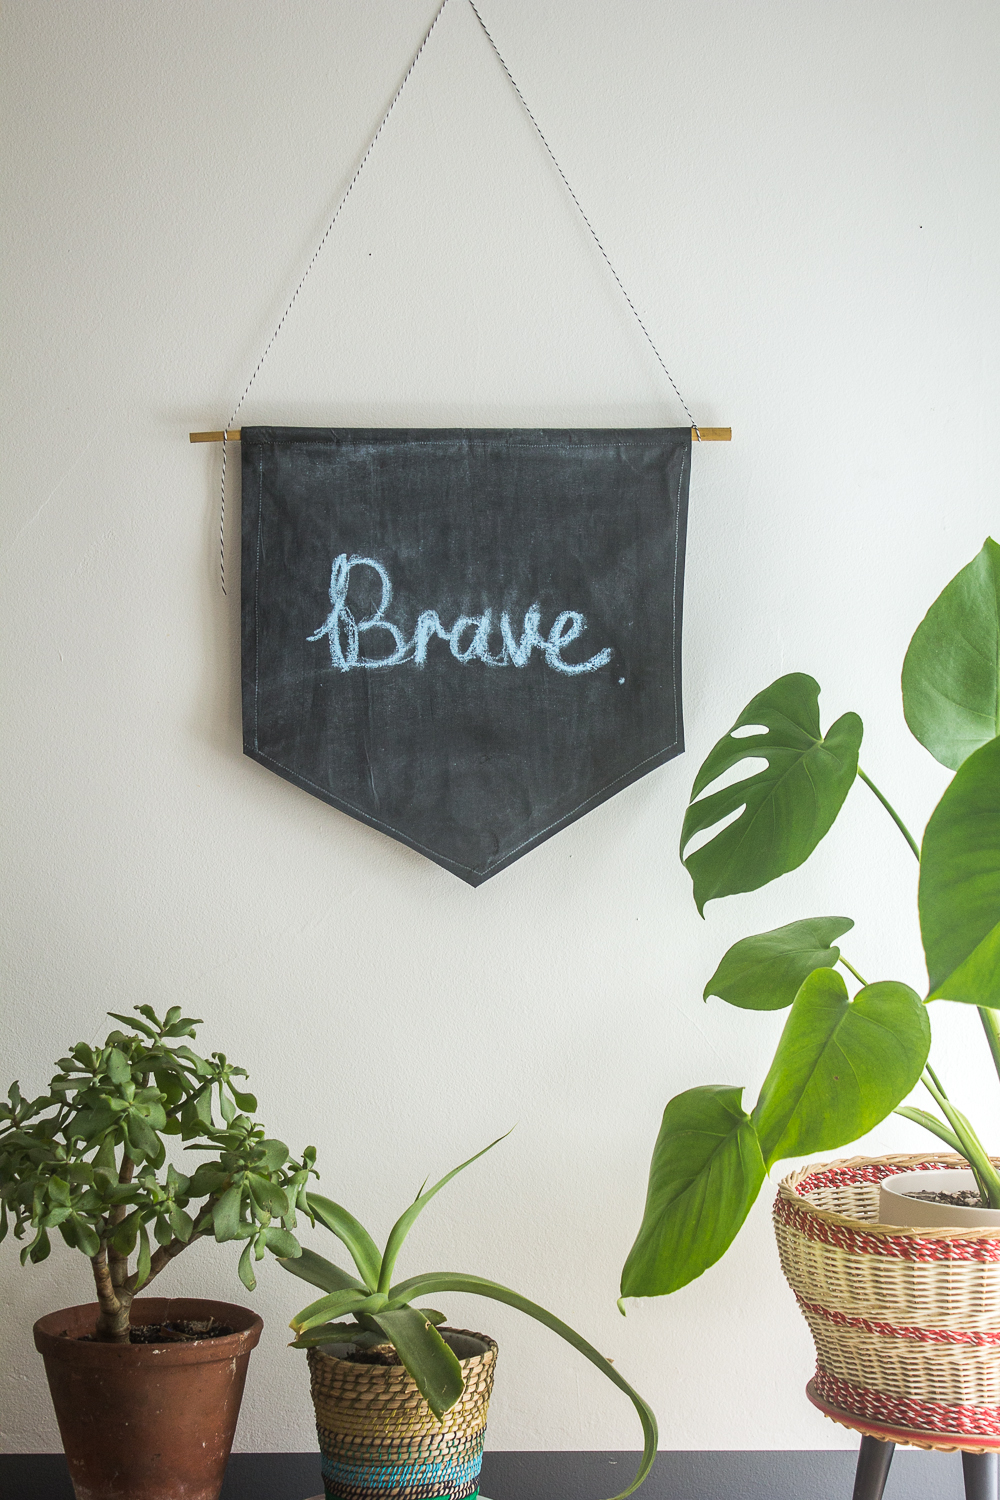 DIY Chalkboard Pennant Mantra Banner | Seeds and Stitches